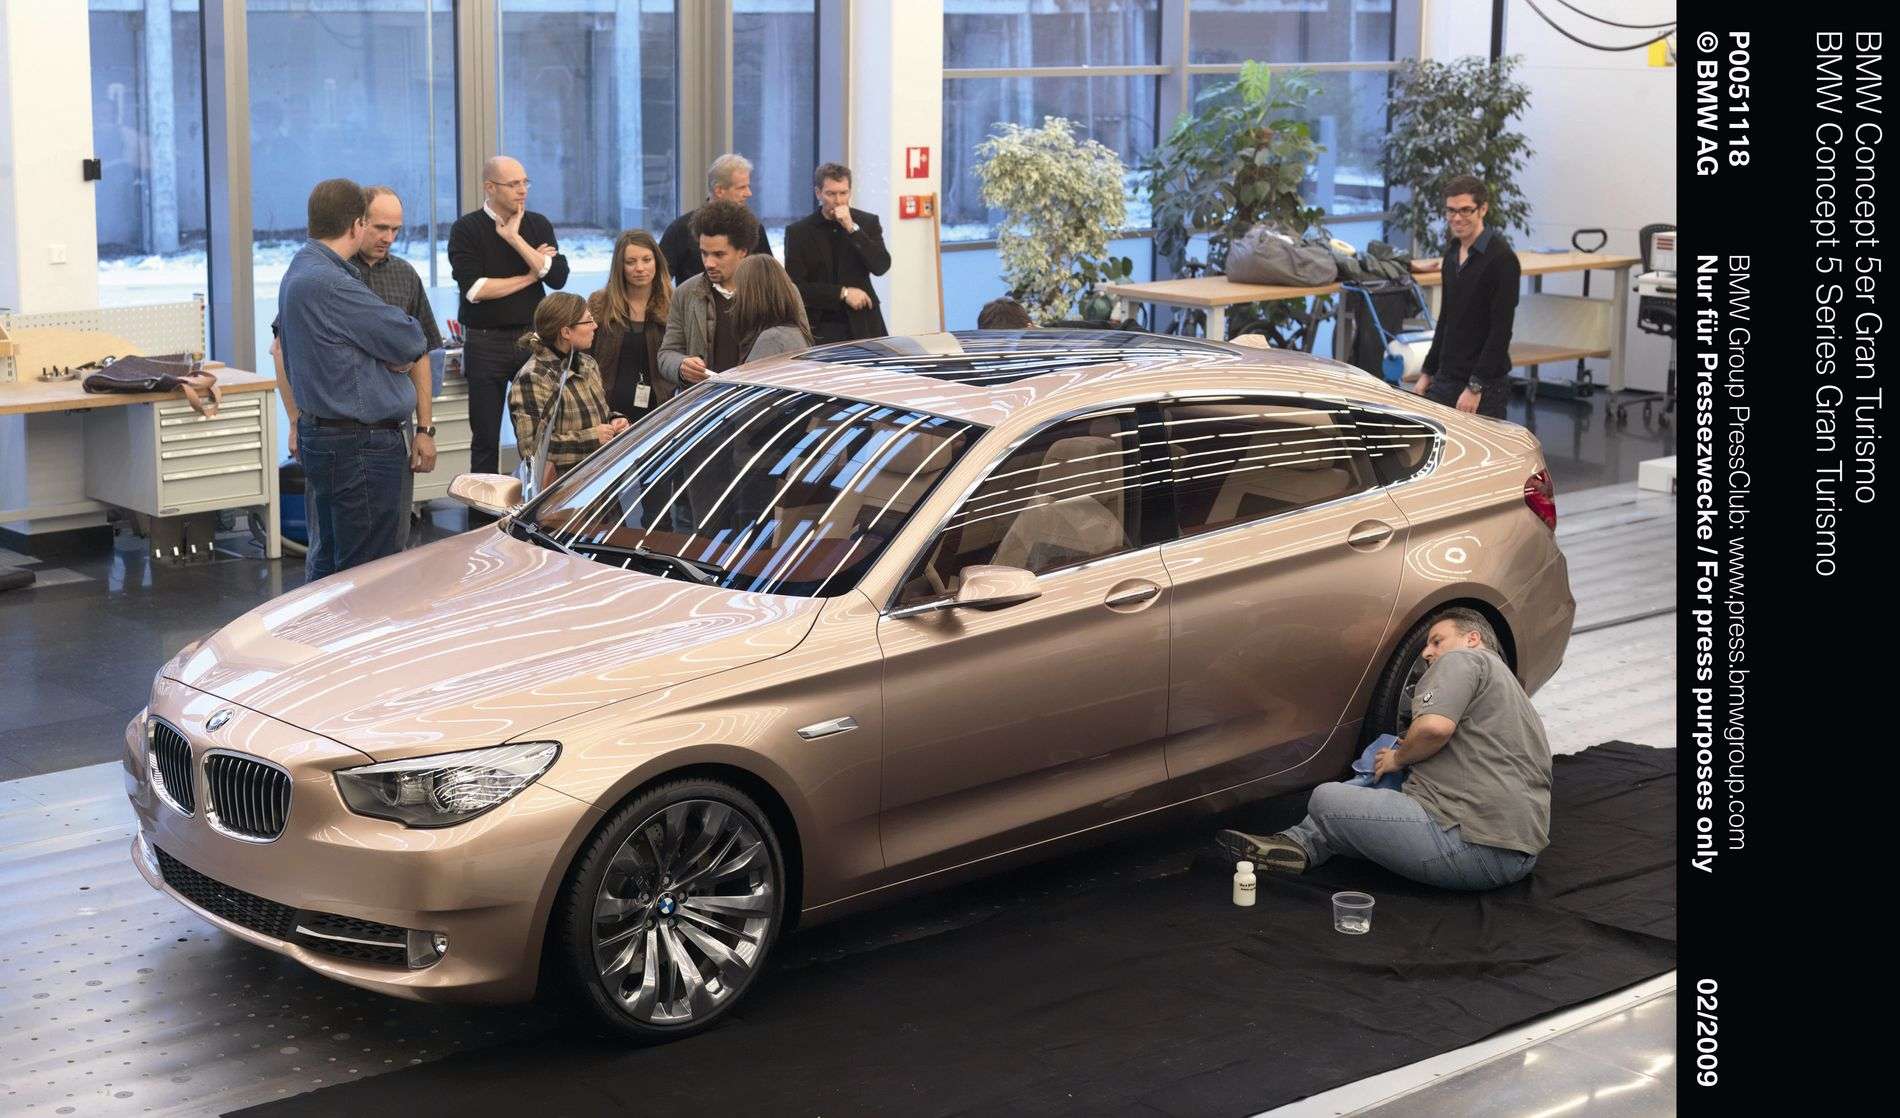 crave for. What we learned so far is that the 5 Series GT production